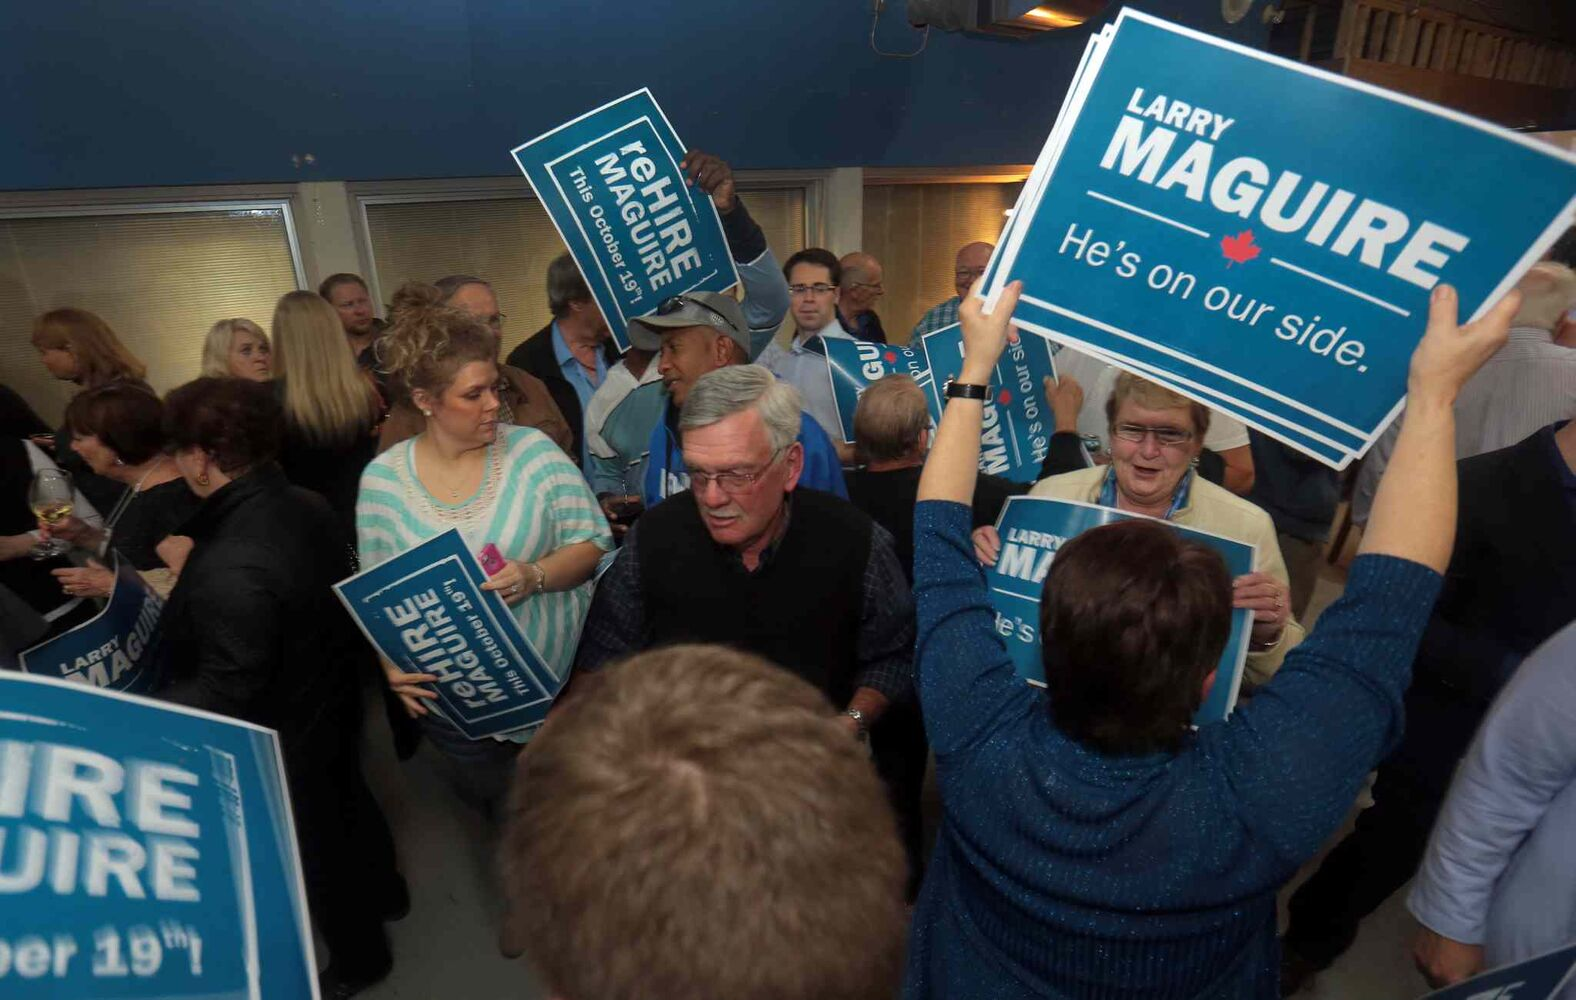 Larry Maguire was in the building following Monday night's election results at Maguire's campaign office.  (Bruce Bumstead / Brandon Sun)